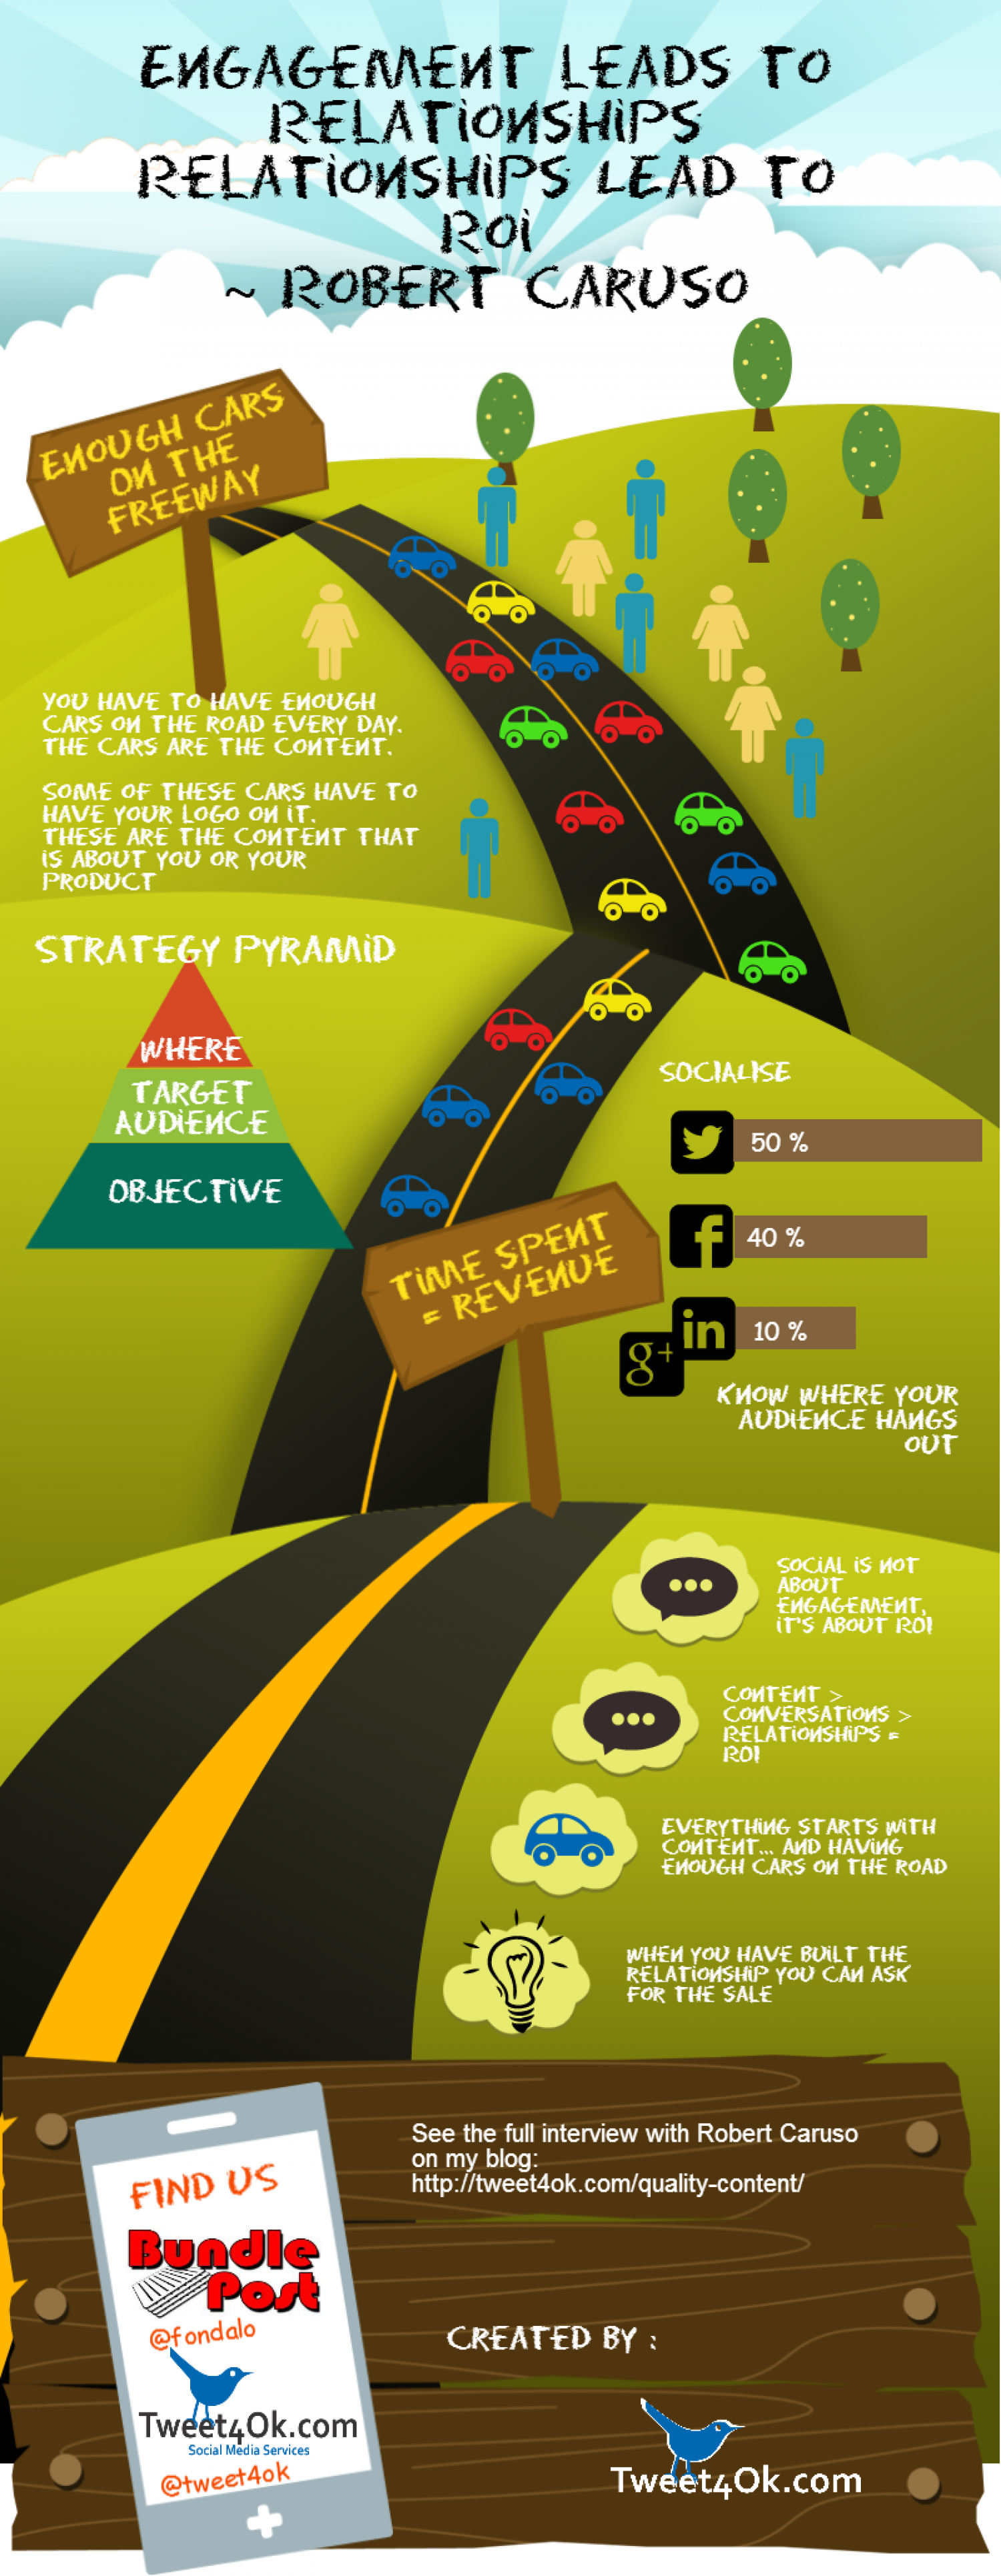 Quality Content Leads To ROI Infographic